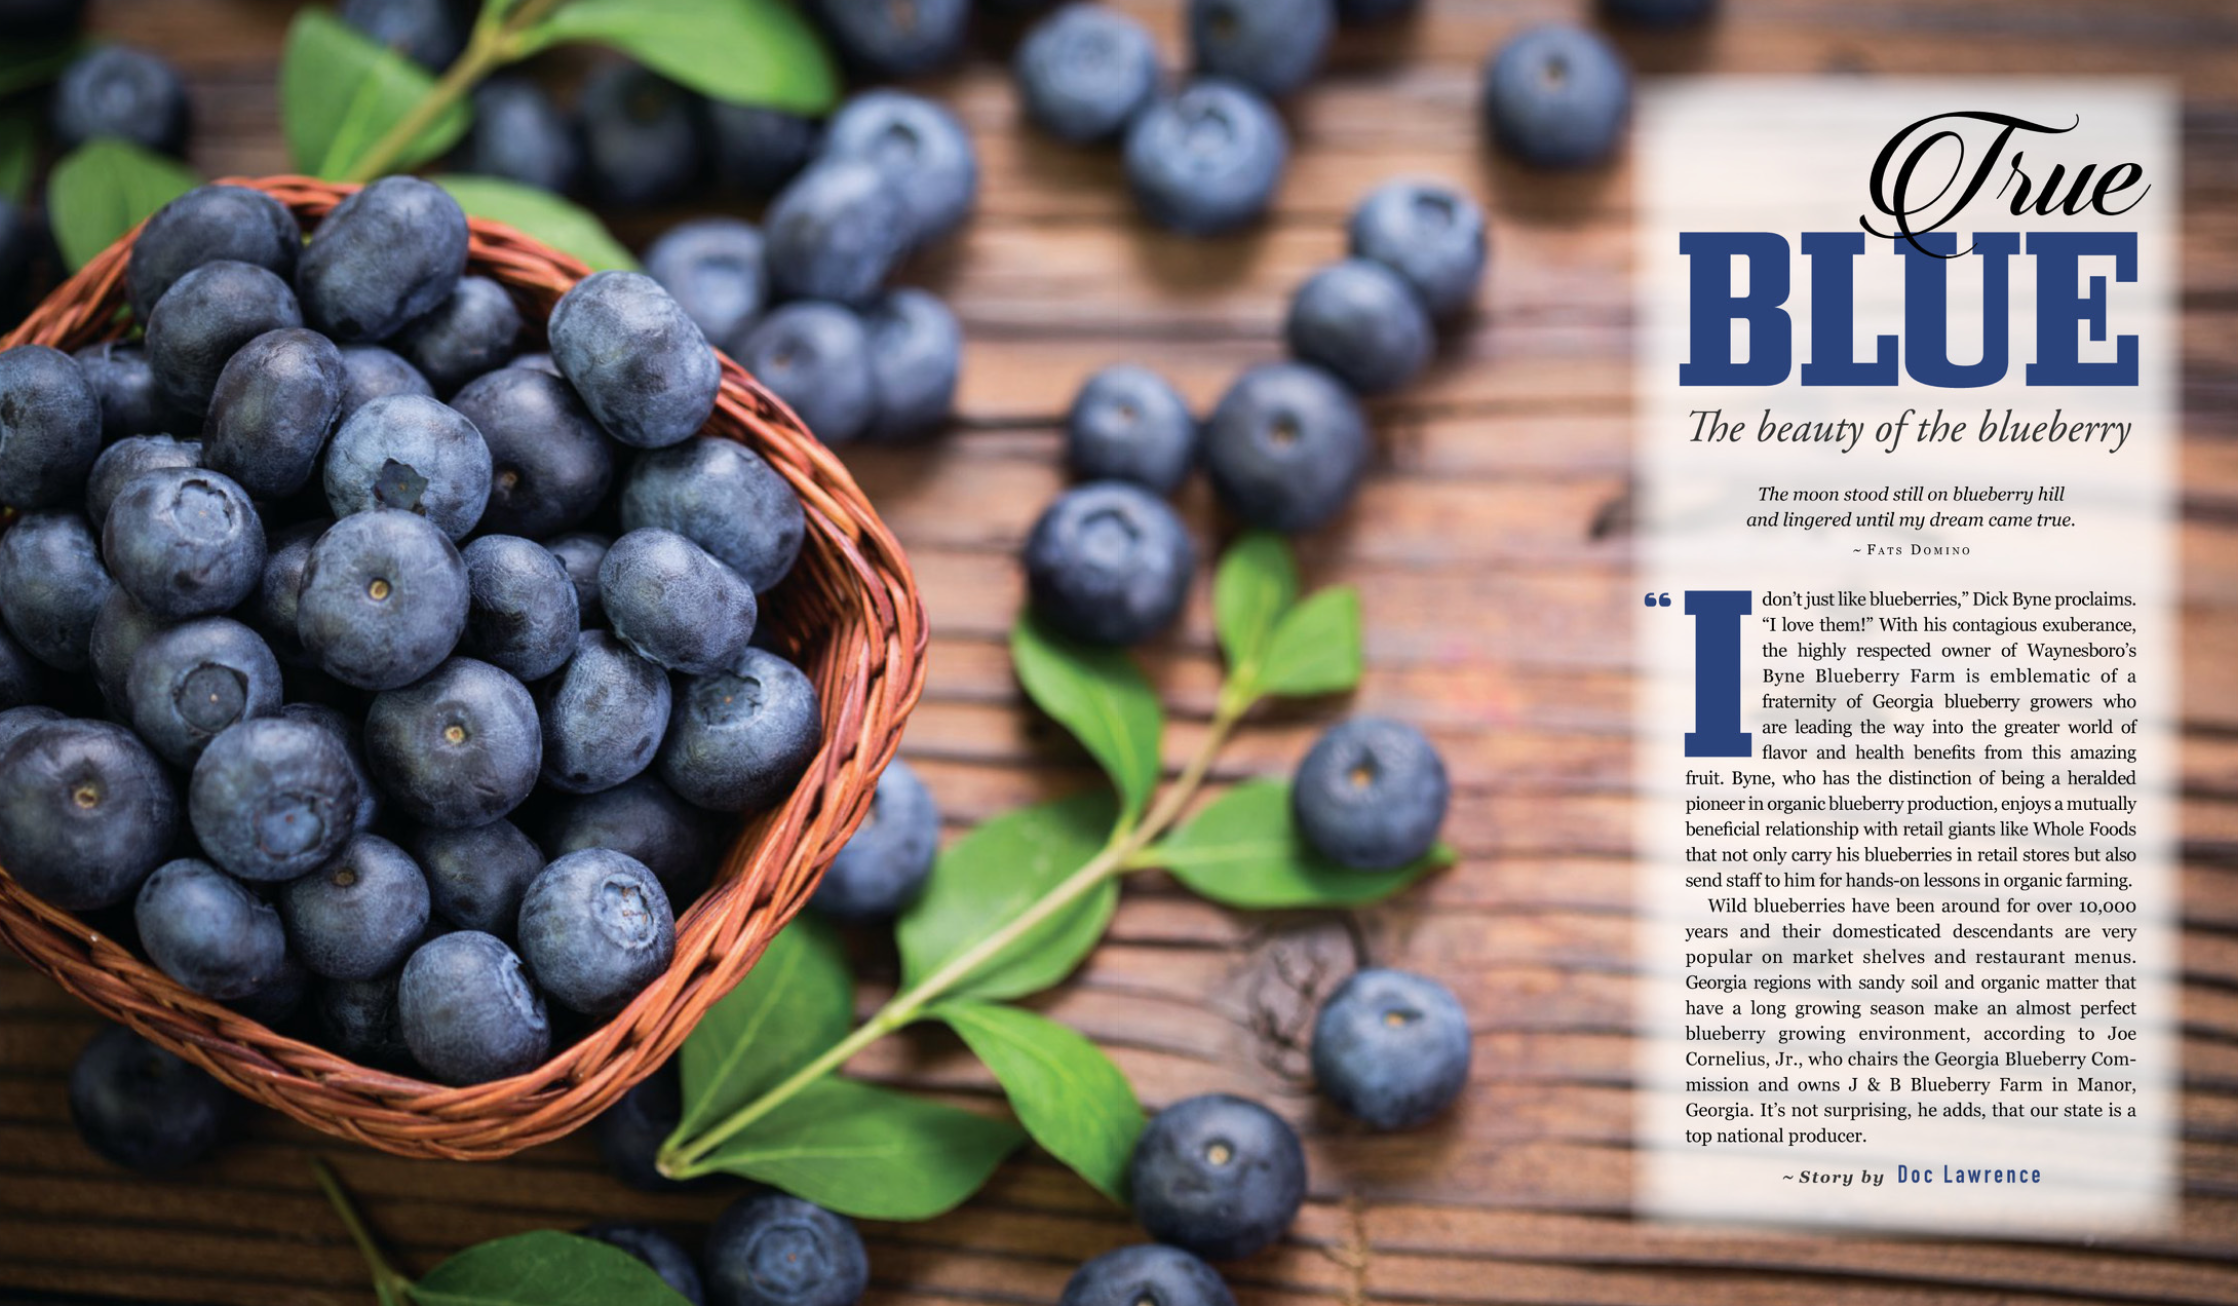 Blueberries are loaded with health benefits. They are a major part of Georgia's agricultural production and are wildly popular with cooks and bakers. Organic blueberries? Yes, indeed. Blueberry wine? Delicious. You pick 'em? Pure fun. Enjoy the story and the original recipes in the  new edition of Georgia Connector .